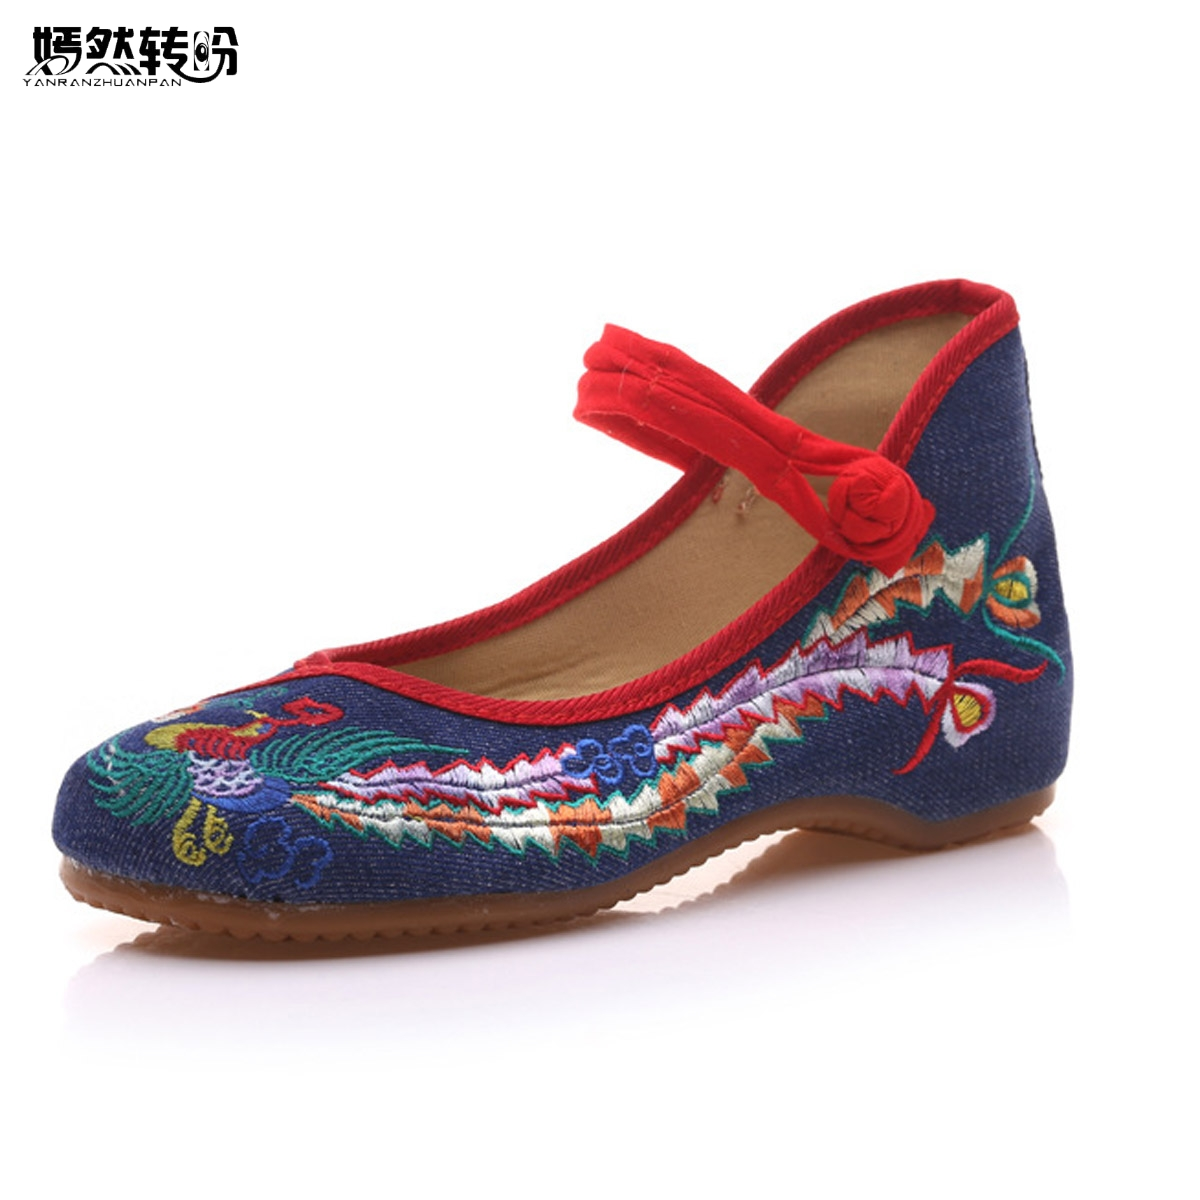 Women Flats Shoes Vintage Embroidered Shoes Woman Chinese Floral Loafers Zapatos Mujer Sapato Feminino Soft Sole Dance Ballet vintage embroidery women flats chinese floral canvas embroidered shoes national old beijing cloth single dance soft flats